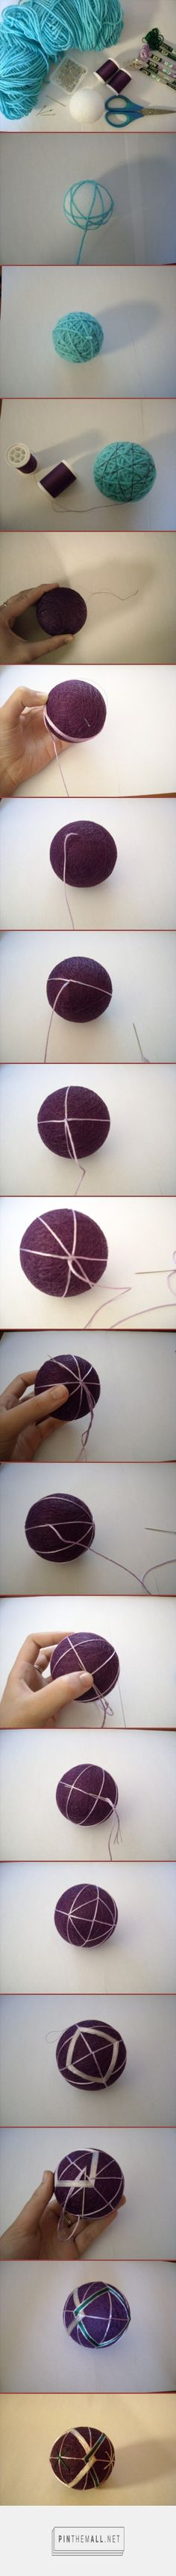 How to make temari – a basic tutorial | All Crafters Great and Small - created via http://pinthemall.net